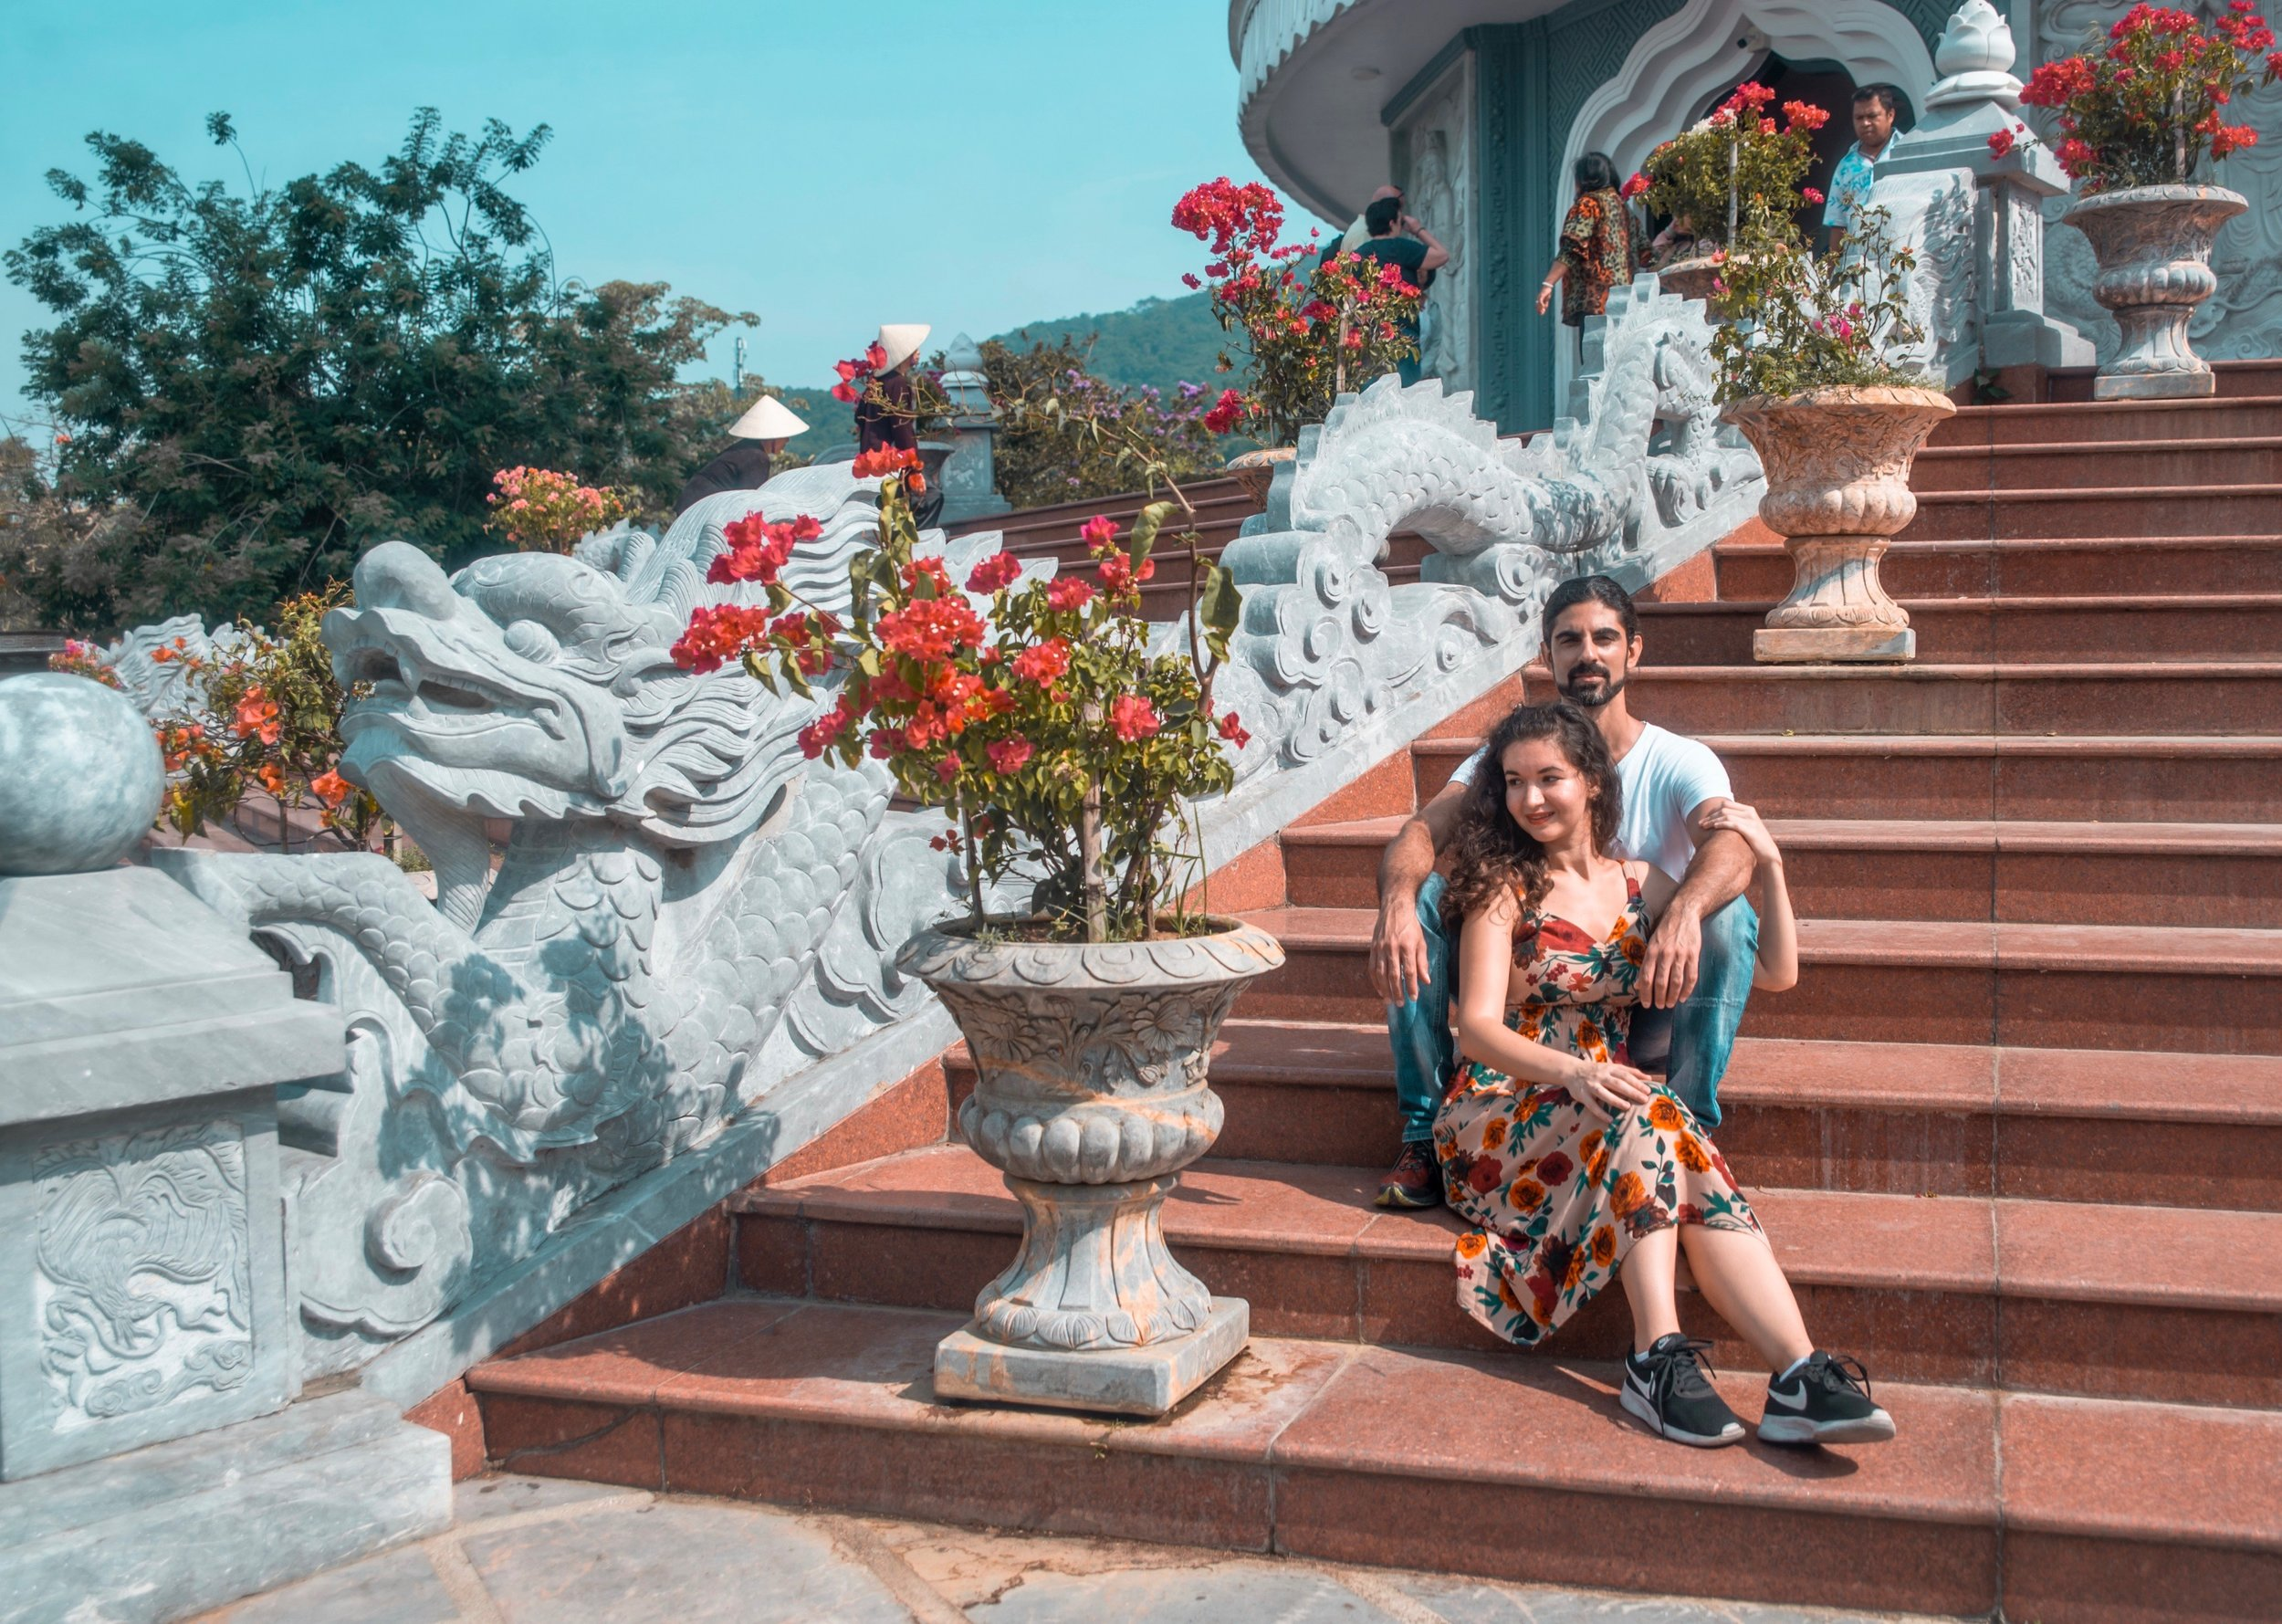 Lera & Daniel - Destination Engagement Session in Da Nang, Vietnam - Photography by Alberto Lama for Unveiled Weddings